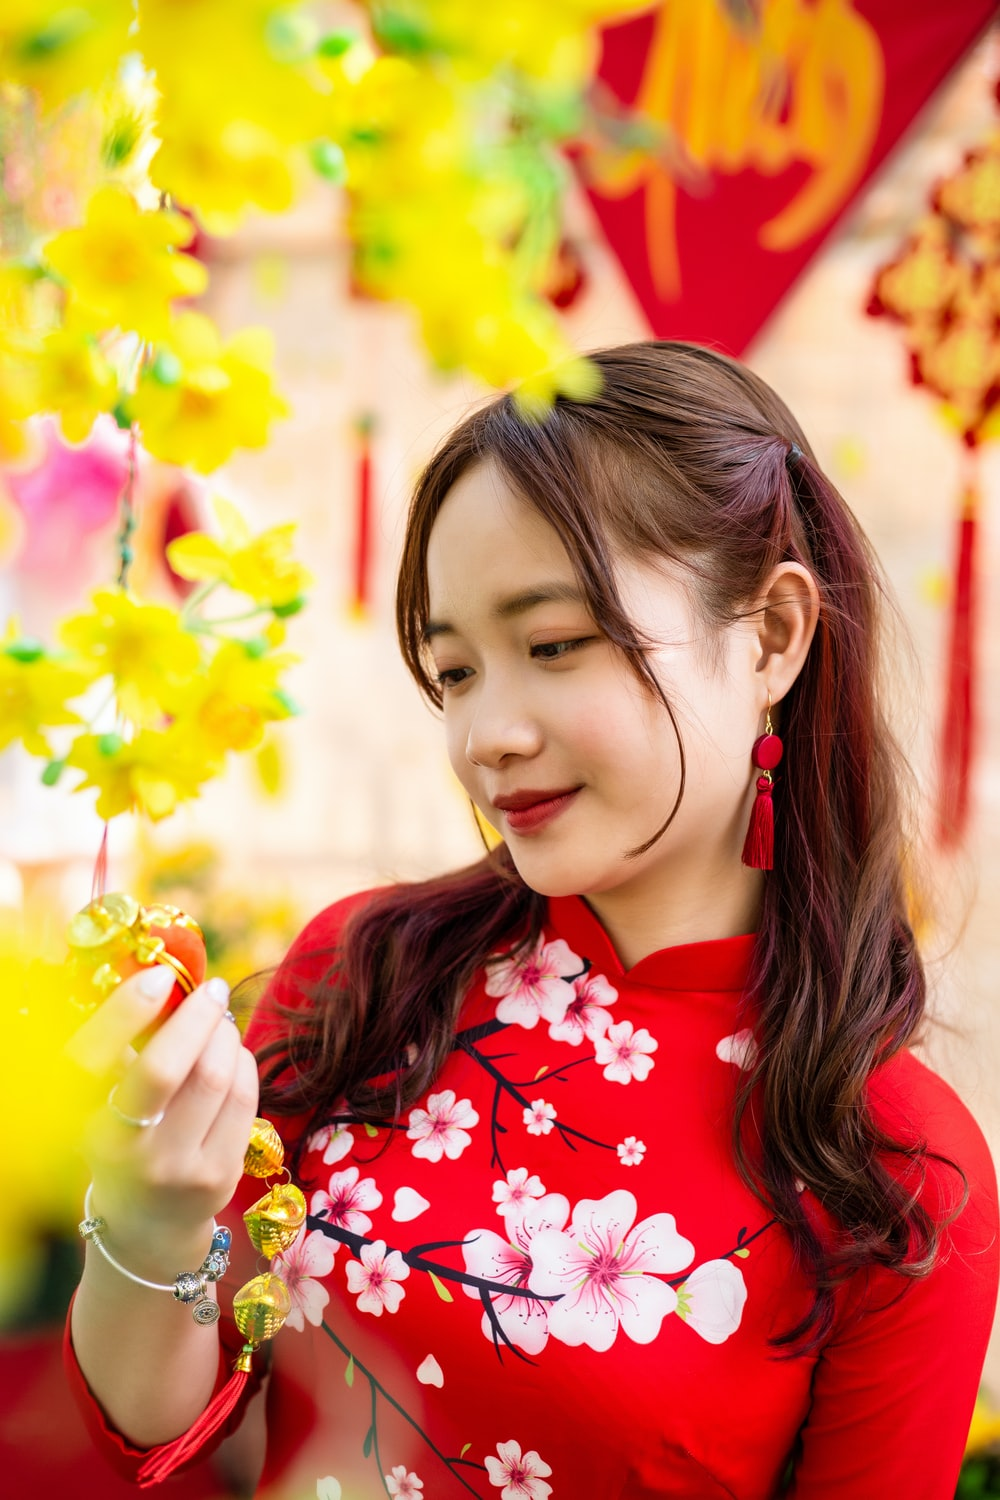 girl in red and white floral shirt holding yellow flower